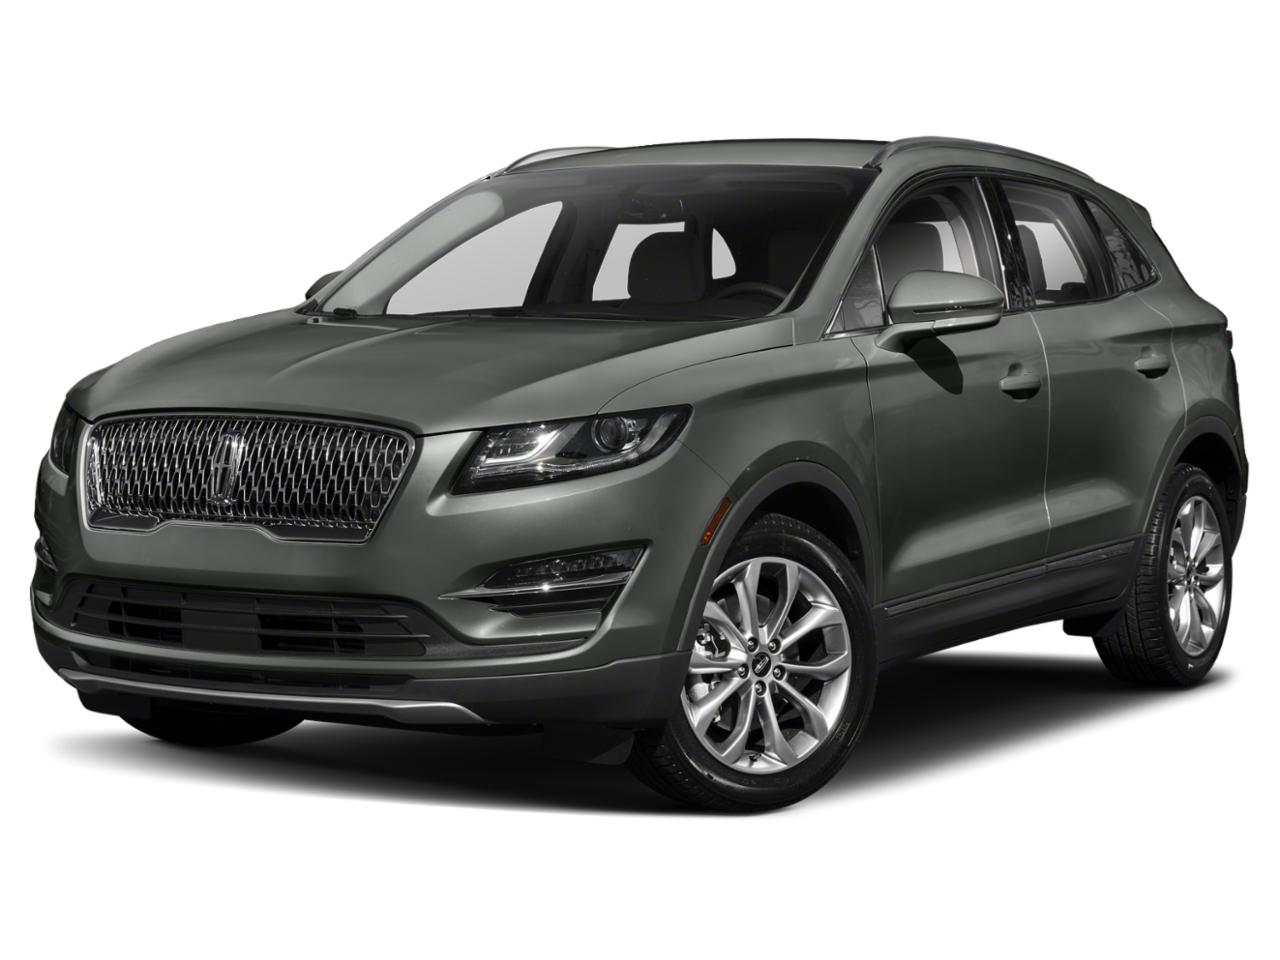 2019 LINCOLN MKC Vehicle Photo in Norwood, MA 02062